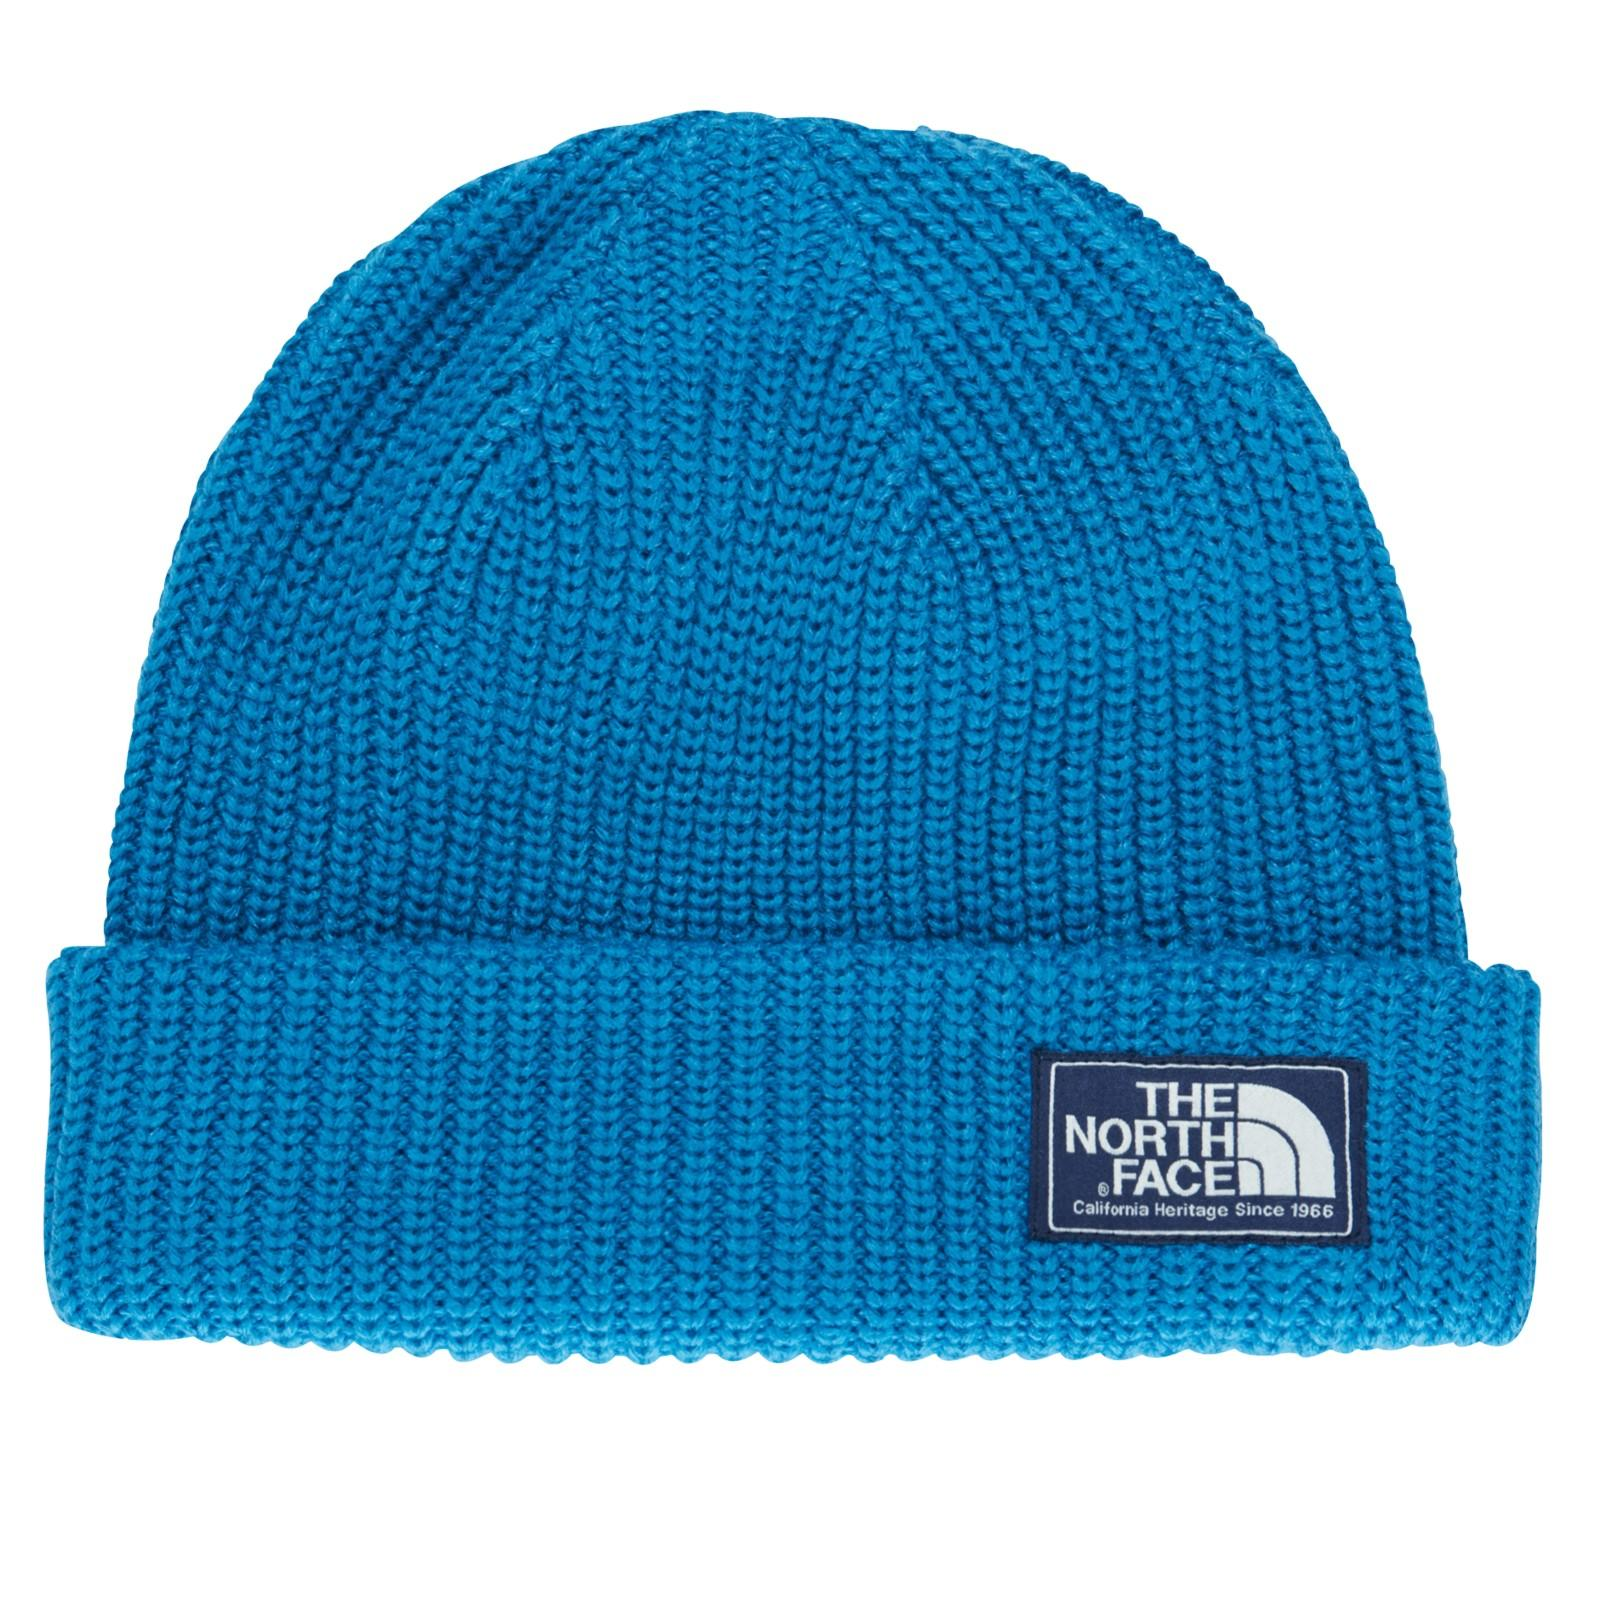 The North Face Salty Dog Beanie in Blue - Lyst f249bda34